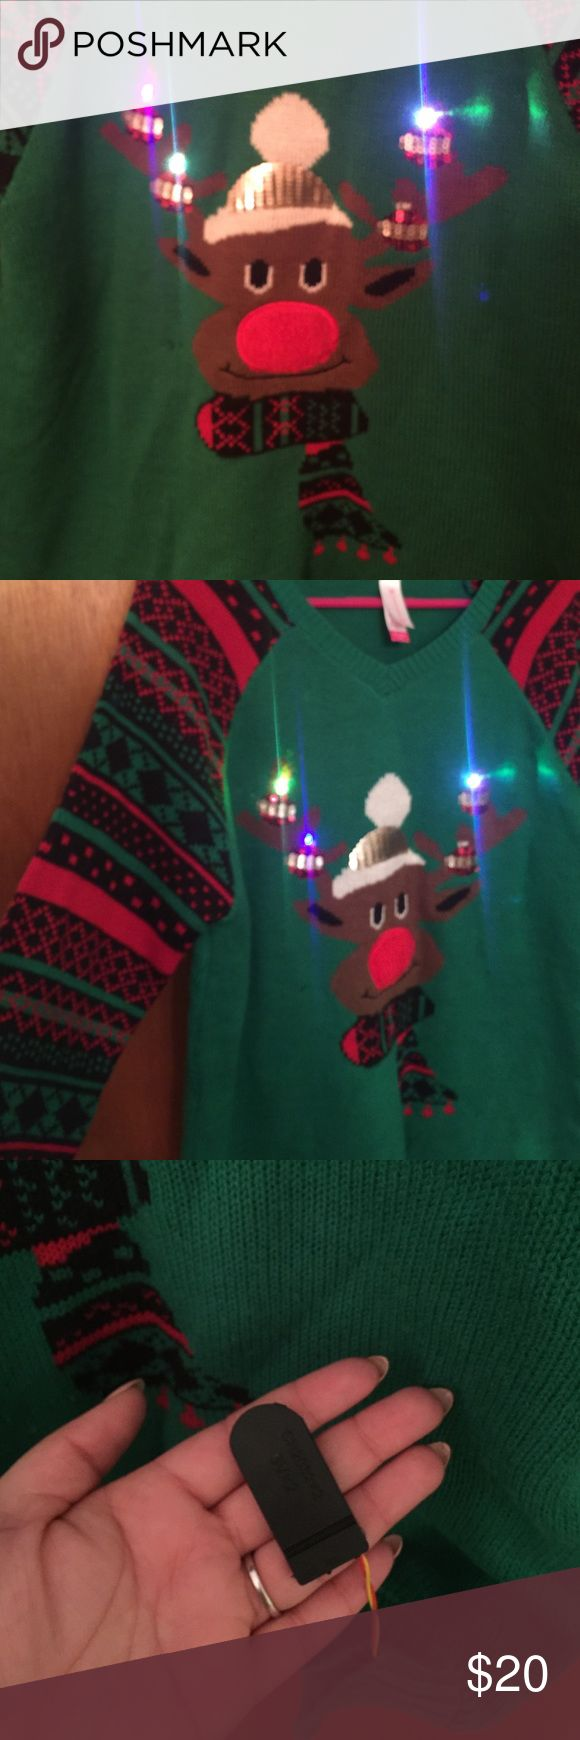 UGLY CHRISTMAS SWEATER LIGHT-UP Sweater lights up and has a switch inside (see photo)  Purchased on sale where returns weren't allowed and was too big, never worn for extended period Sweaters V-Necks